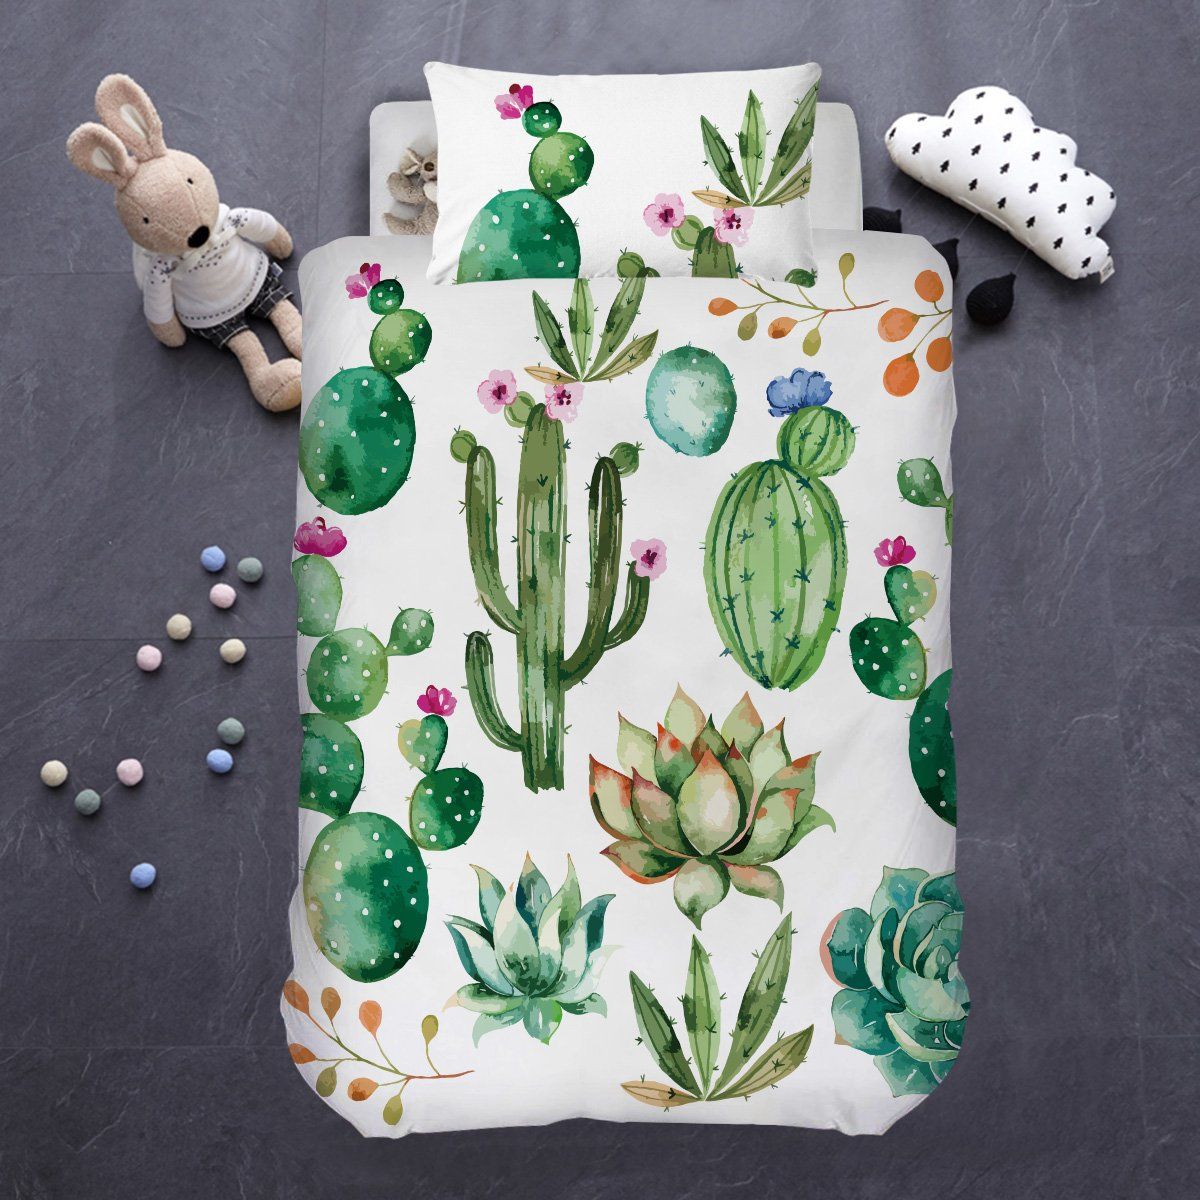 ARIGHTEX Bright Cactus Bedding Green Plant Bedspread Botanical Natural Duvet Cover 2 Piece College Dorm Comforter Cover Set (Single)